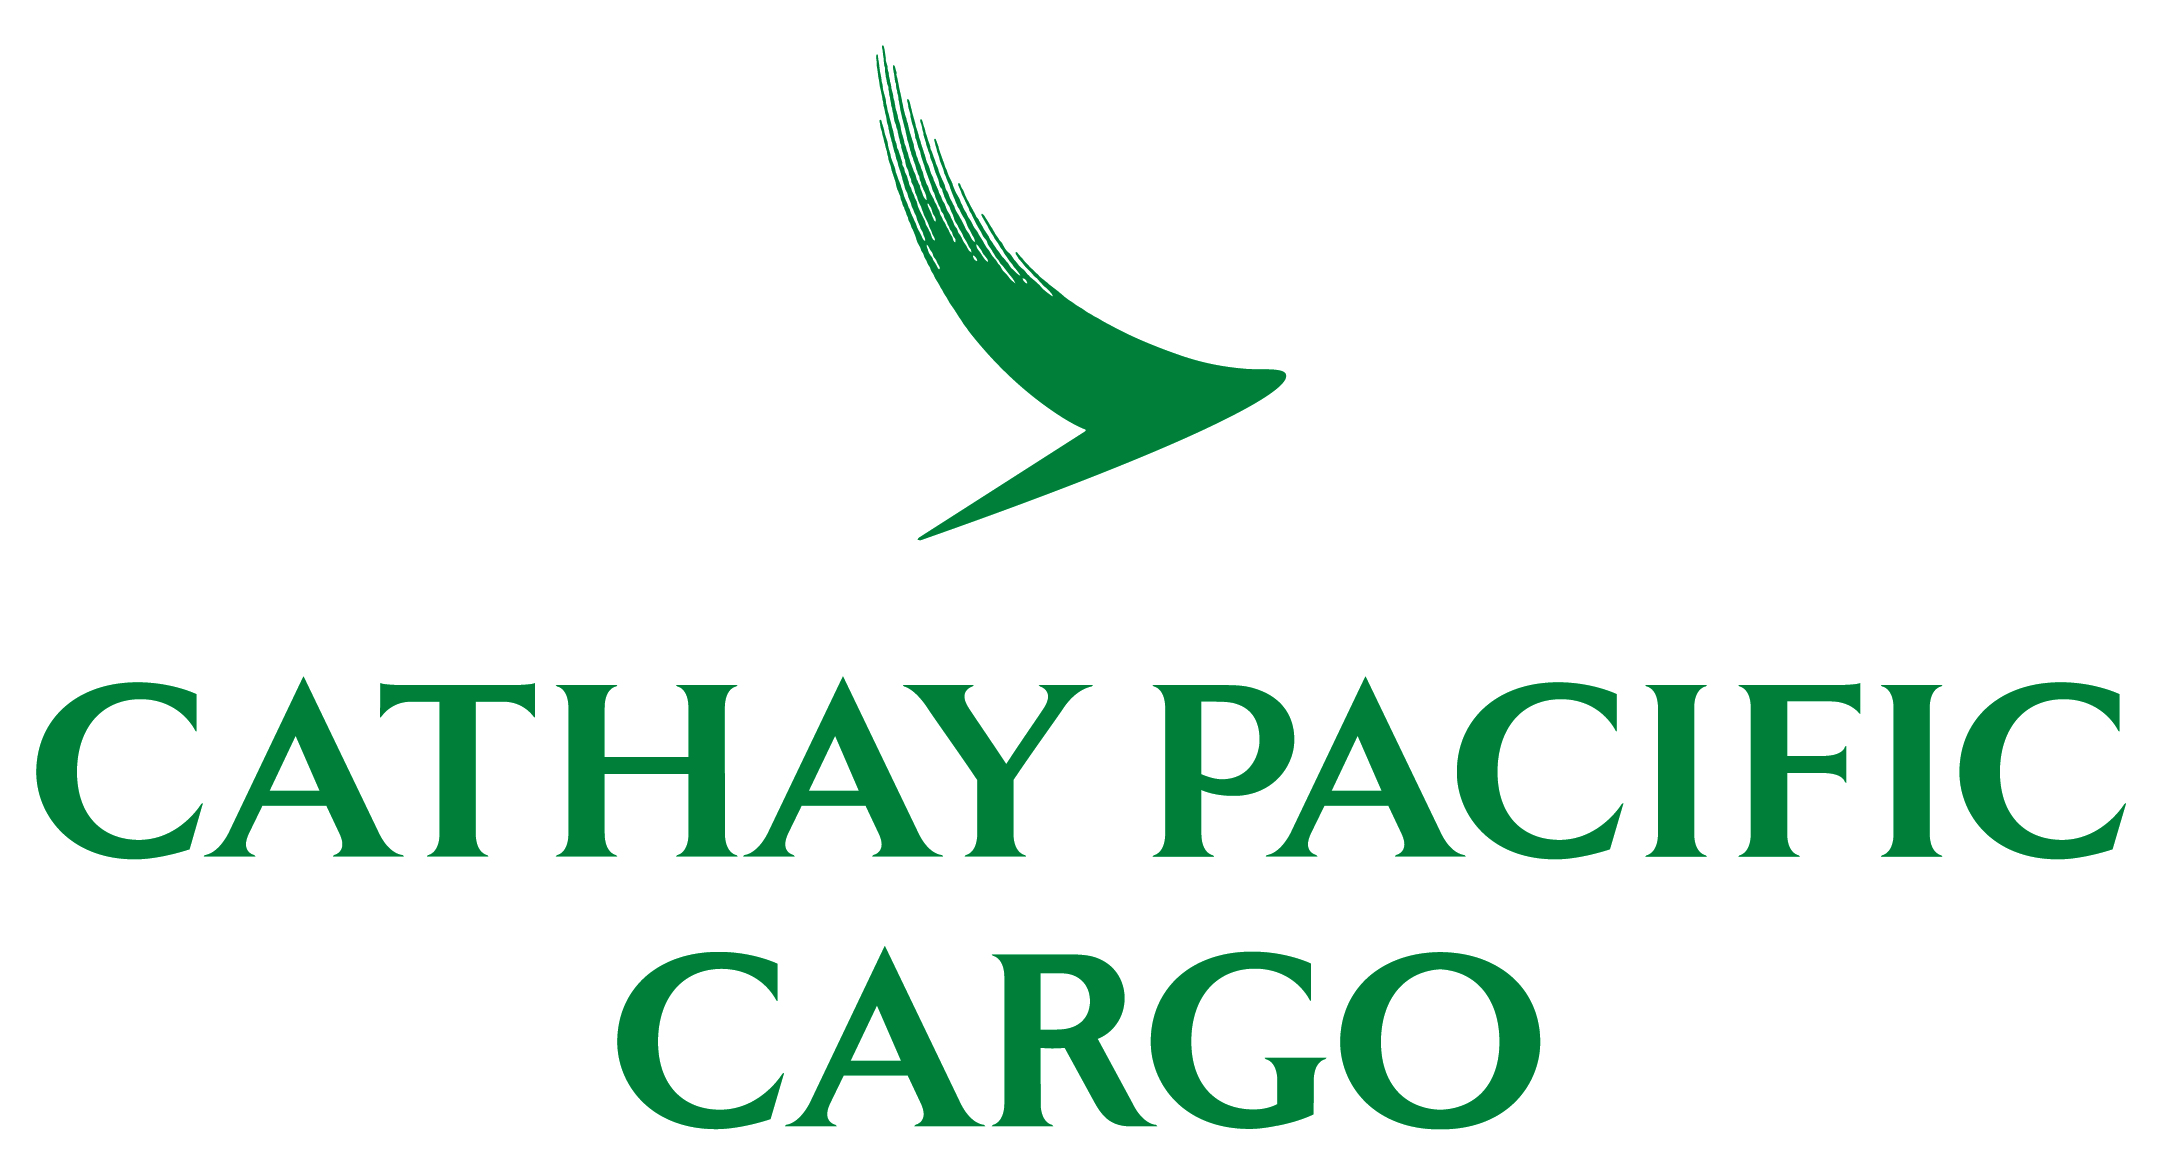 GOED Cathay Pacific Cargo 2019.jpg